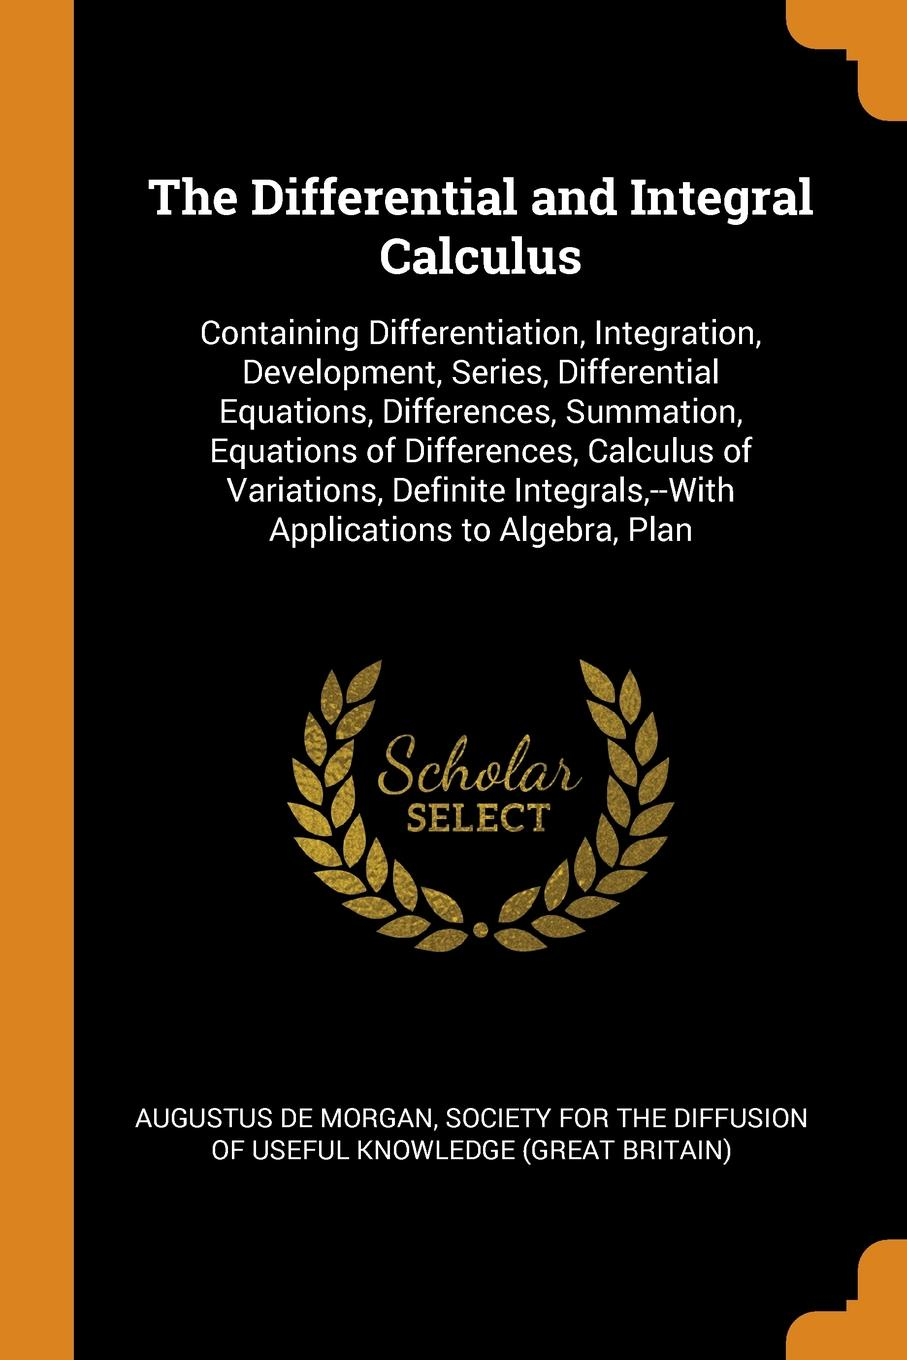 The Differential and Integral Calculus. Containing Differentiation, Integration, Development, Series, Differential Equations, Differences, Summation, Equations of Differences, Calculus of Variations, Definite Integrals,--With Applications to Algeb...